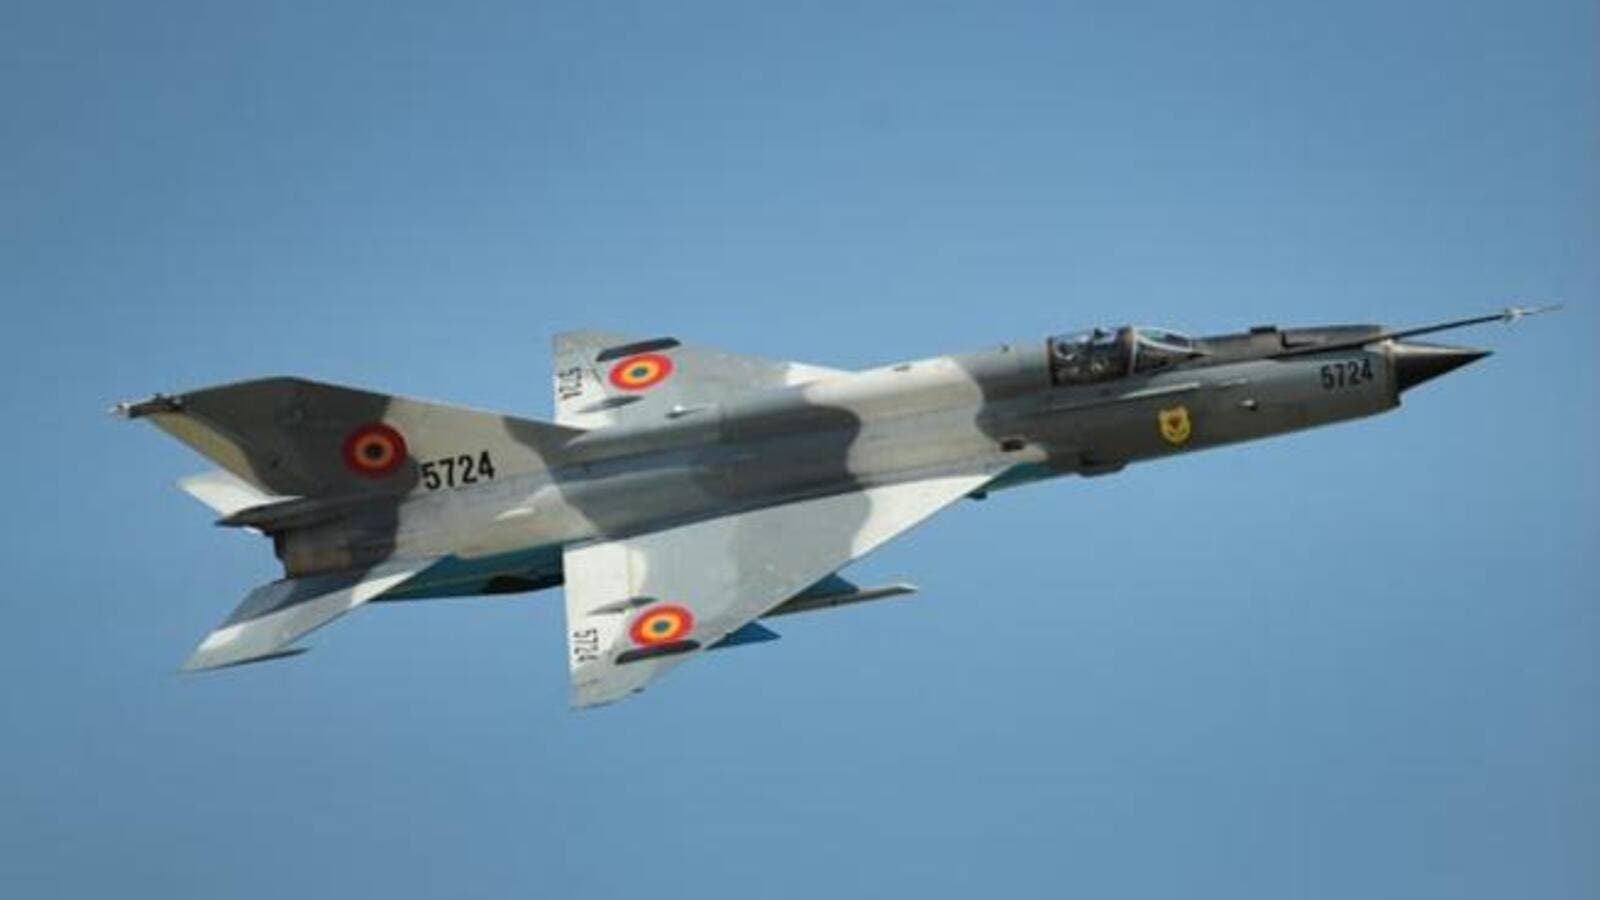 An MiG-21 jetfighter, the same model as the one flown into Jordan